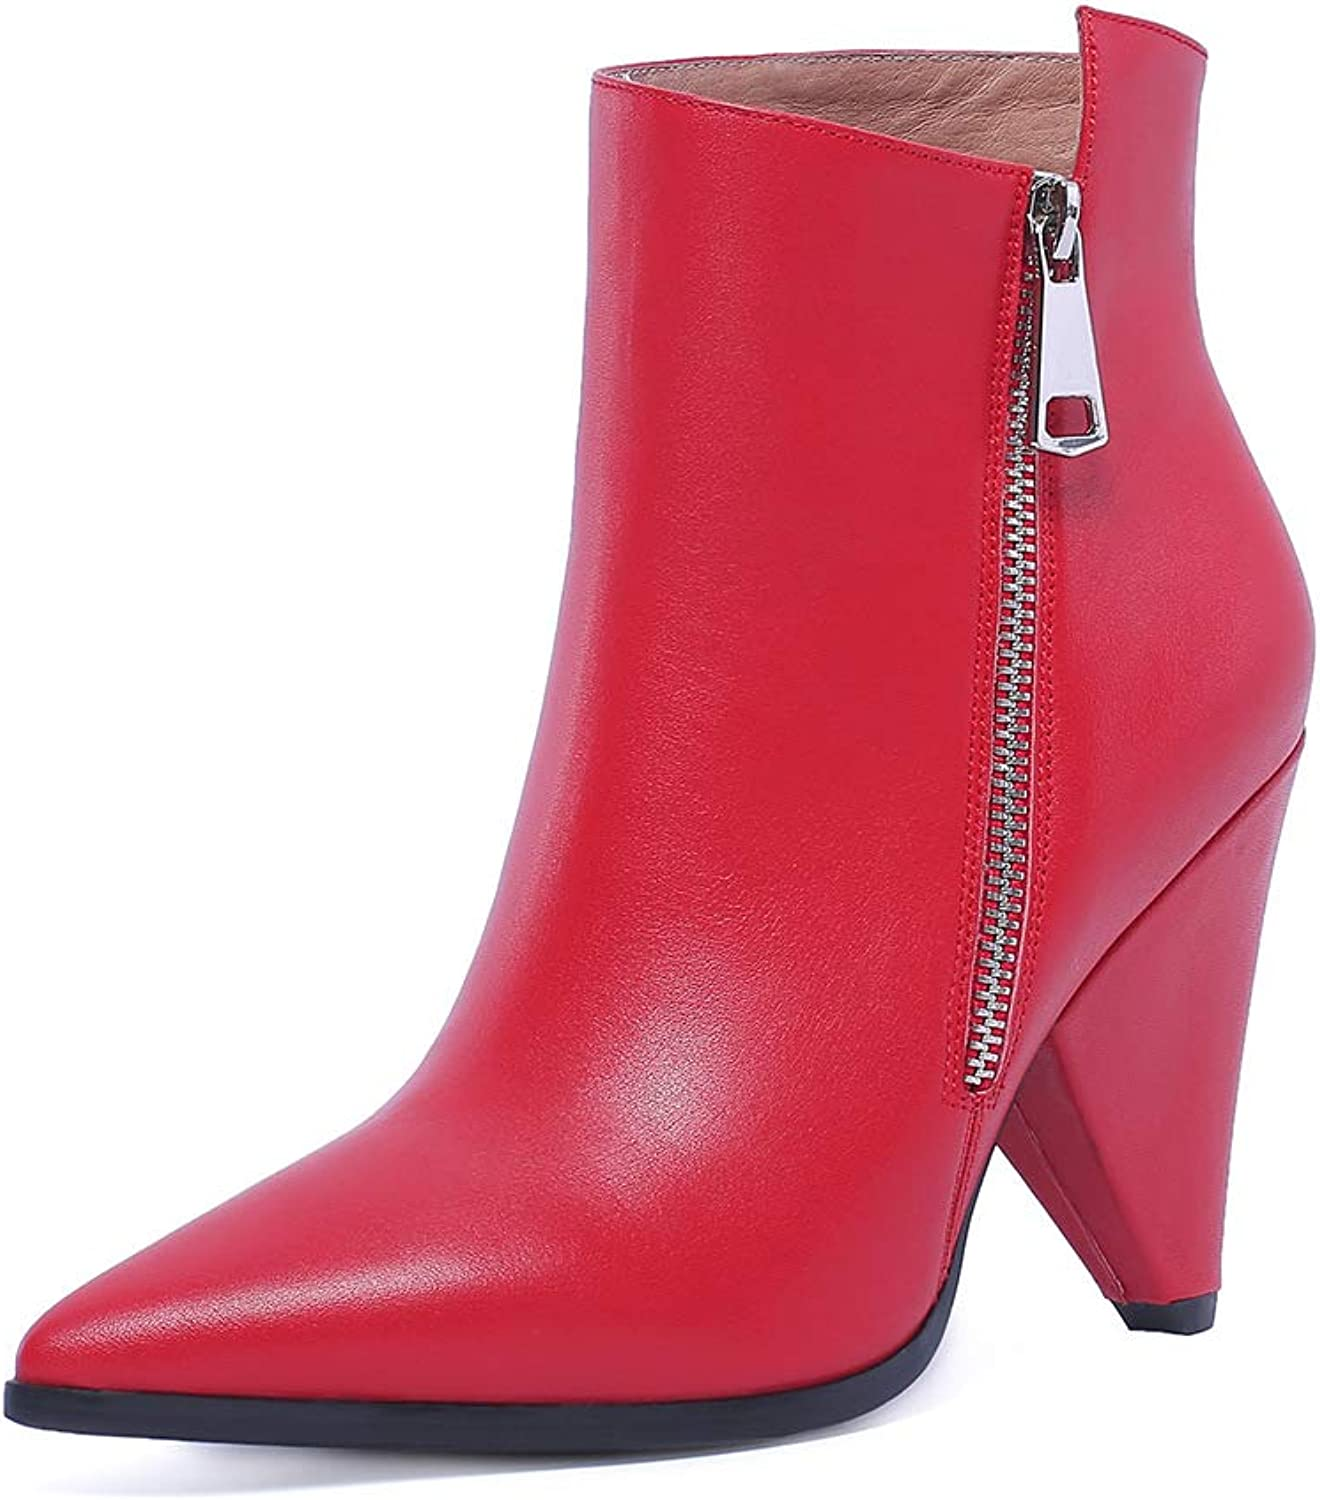 ISNOM STYLE AGIT Brand Design Women Ankle Bootie Genuine Leather Spike high Heel Boots Pointy Toe Woman shoes